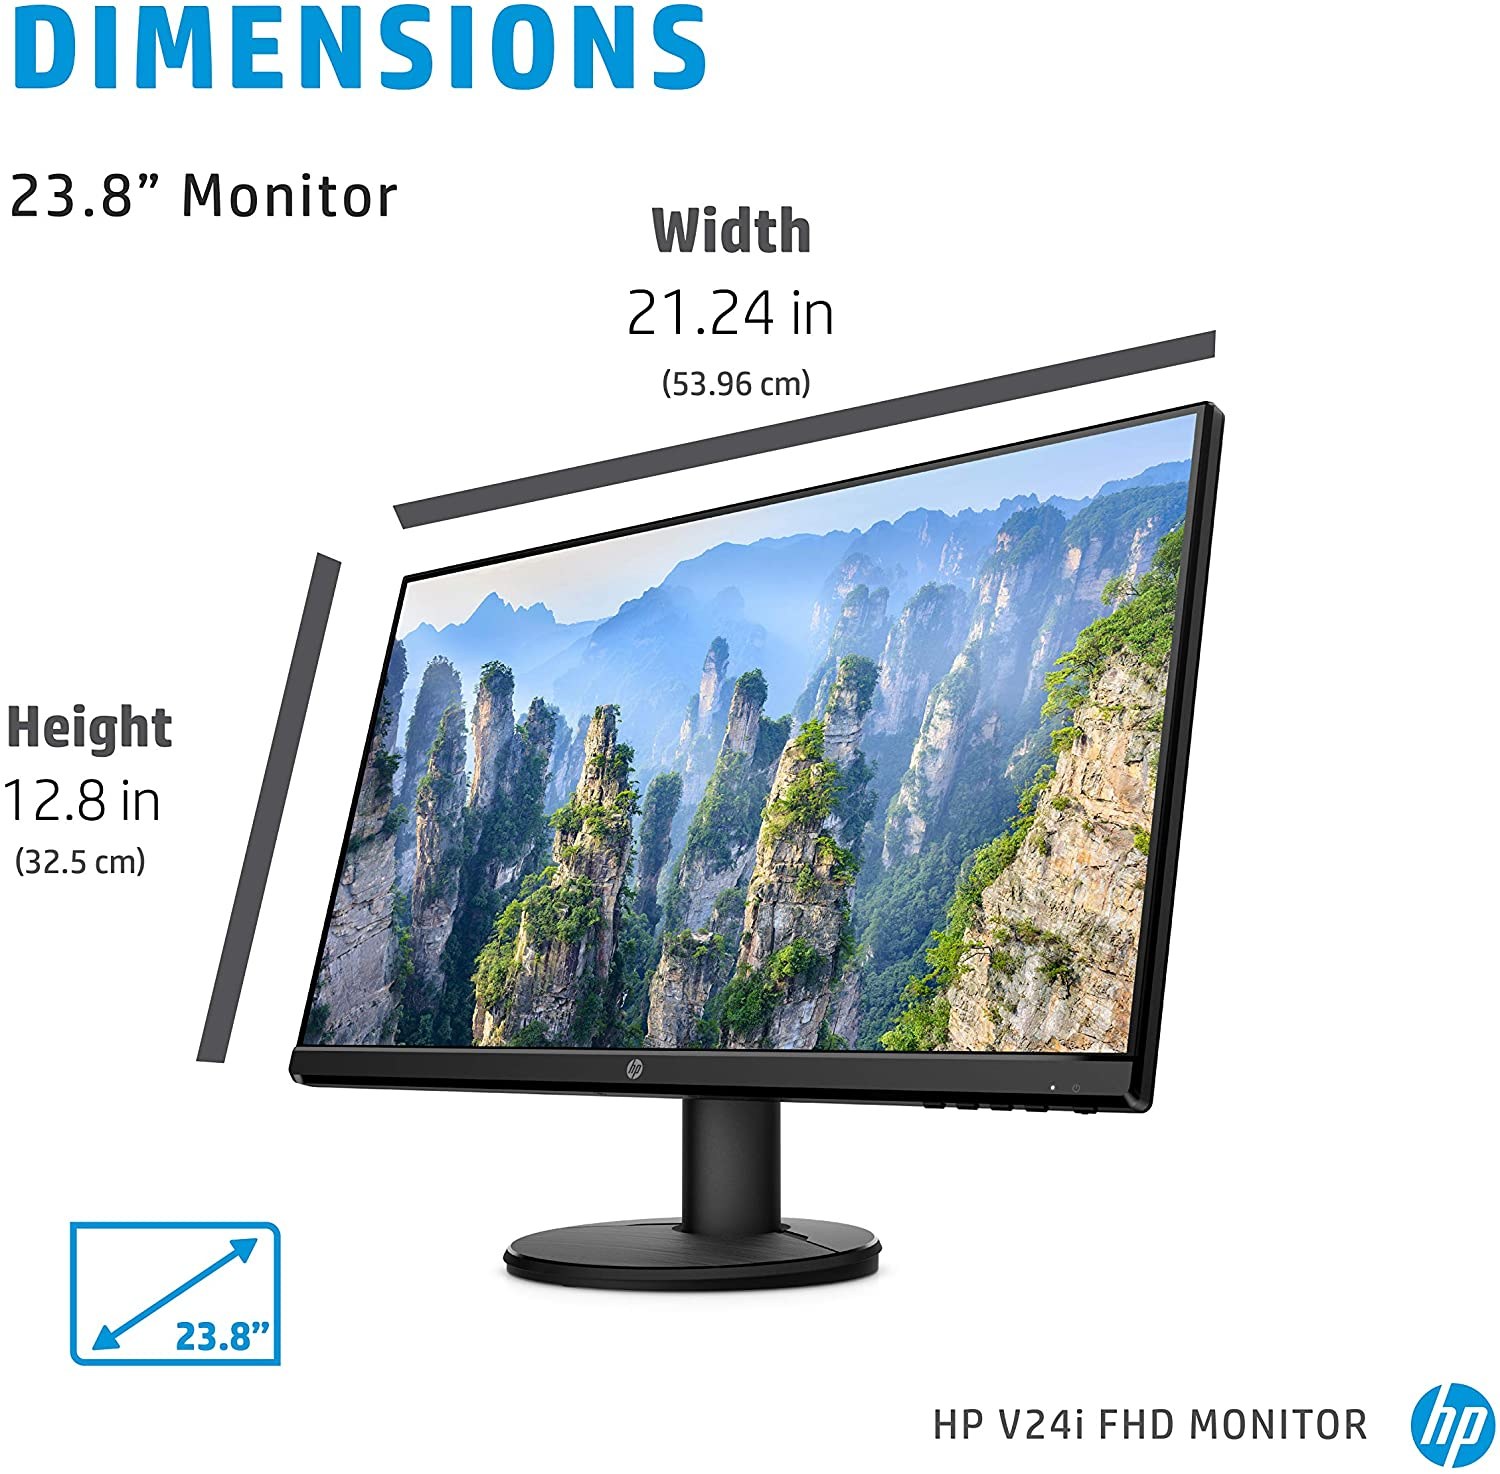 HP V24i FHD Monitor | 23.8-inch Diagonal Full HD Computer Monitor with IPS Panel and 3-Sided Micro Edge Design | Low Blue Light Screen with HDMI and VGA Ports | (9RV15AA#ABA)